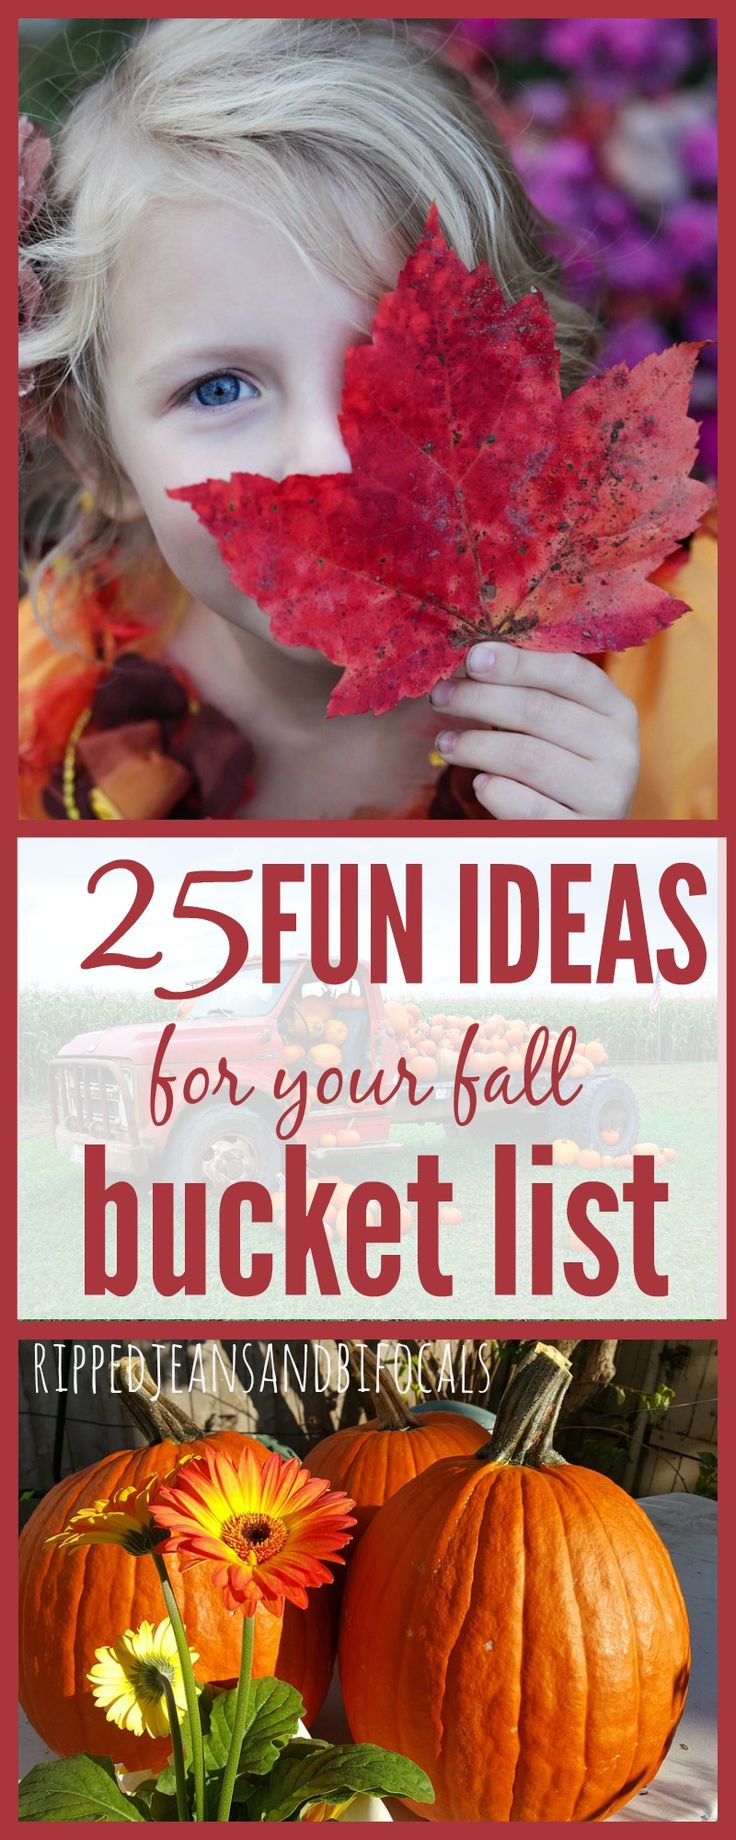 Fall Family Bucket List Ripped Jeans and Bifocals  Bucket lists fall bucket lists activities to do with kids in the fall fall activities for kids family activities for fall pumpkin patch locations corn maze locations Halloween craft ideas easy Halloween crafts fall recipe ideas fall decorating ideas 